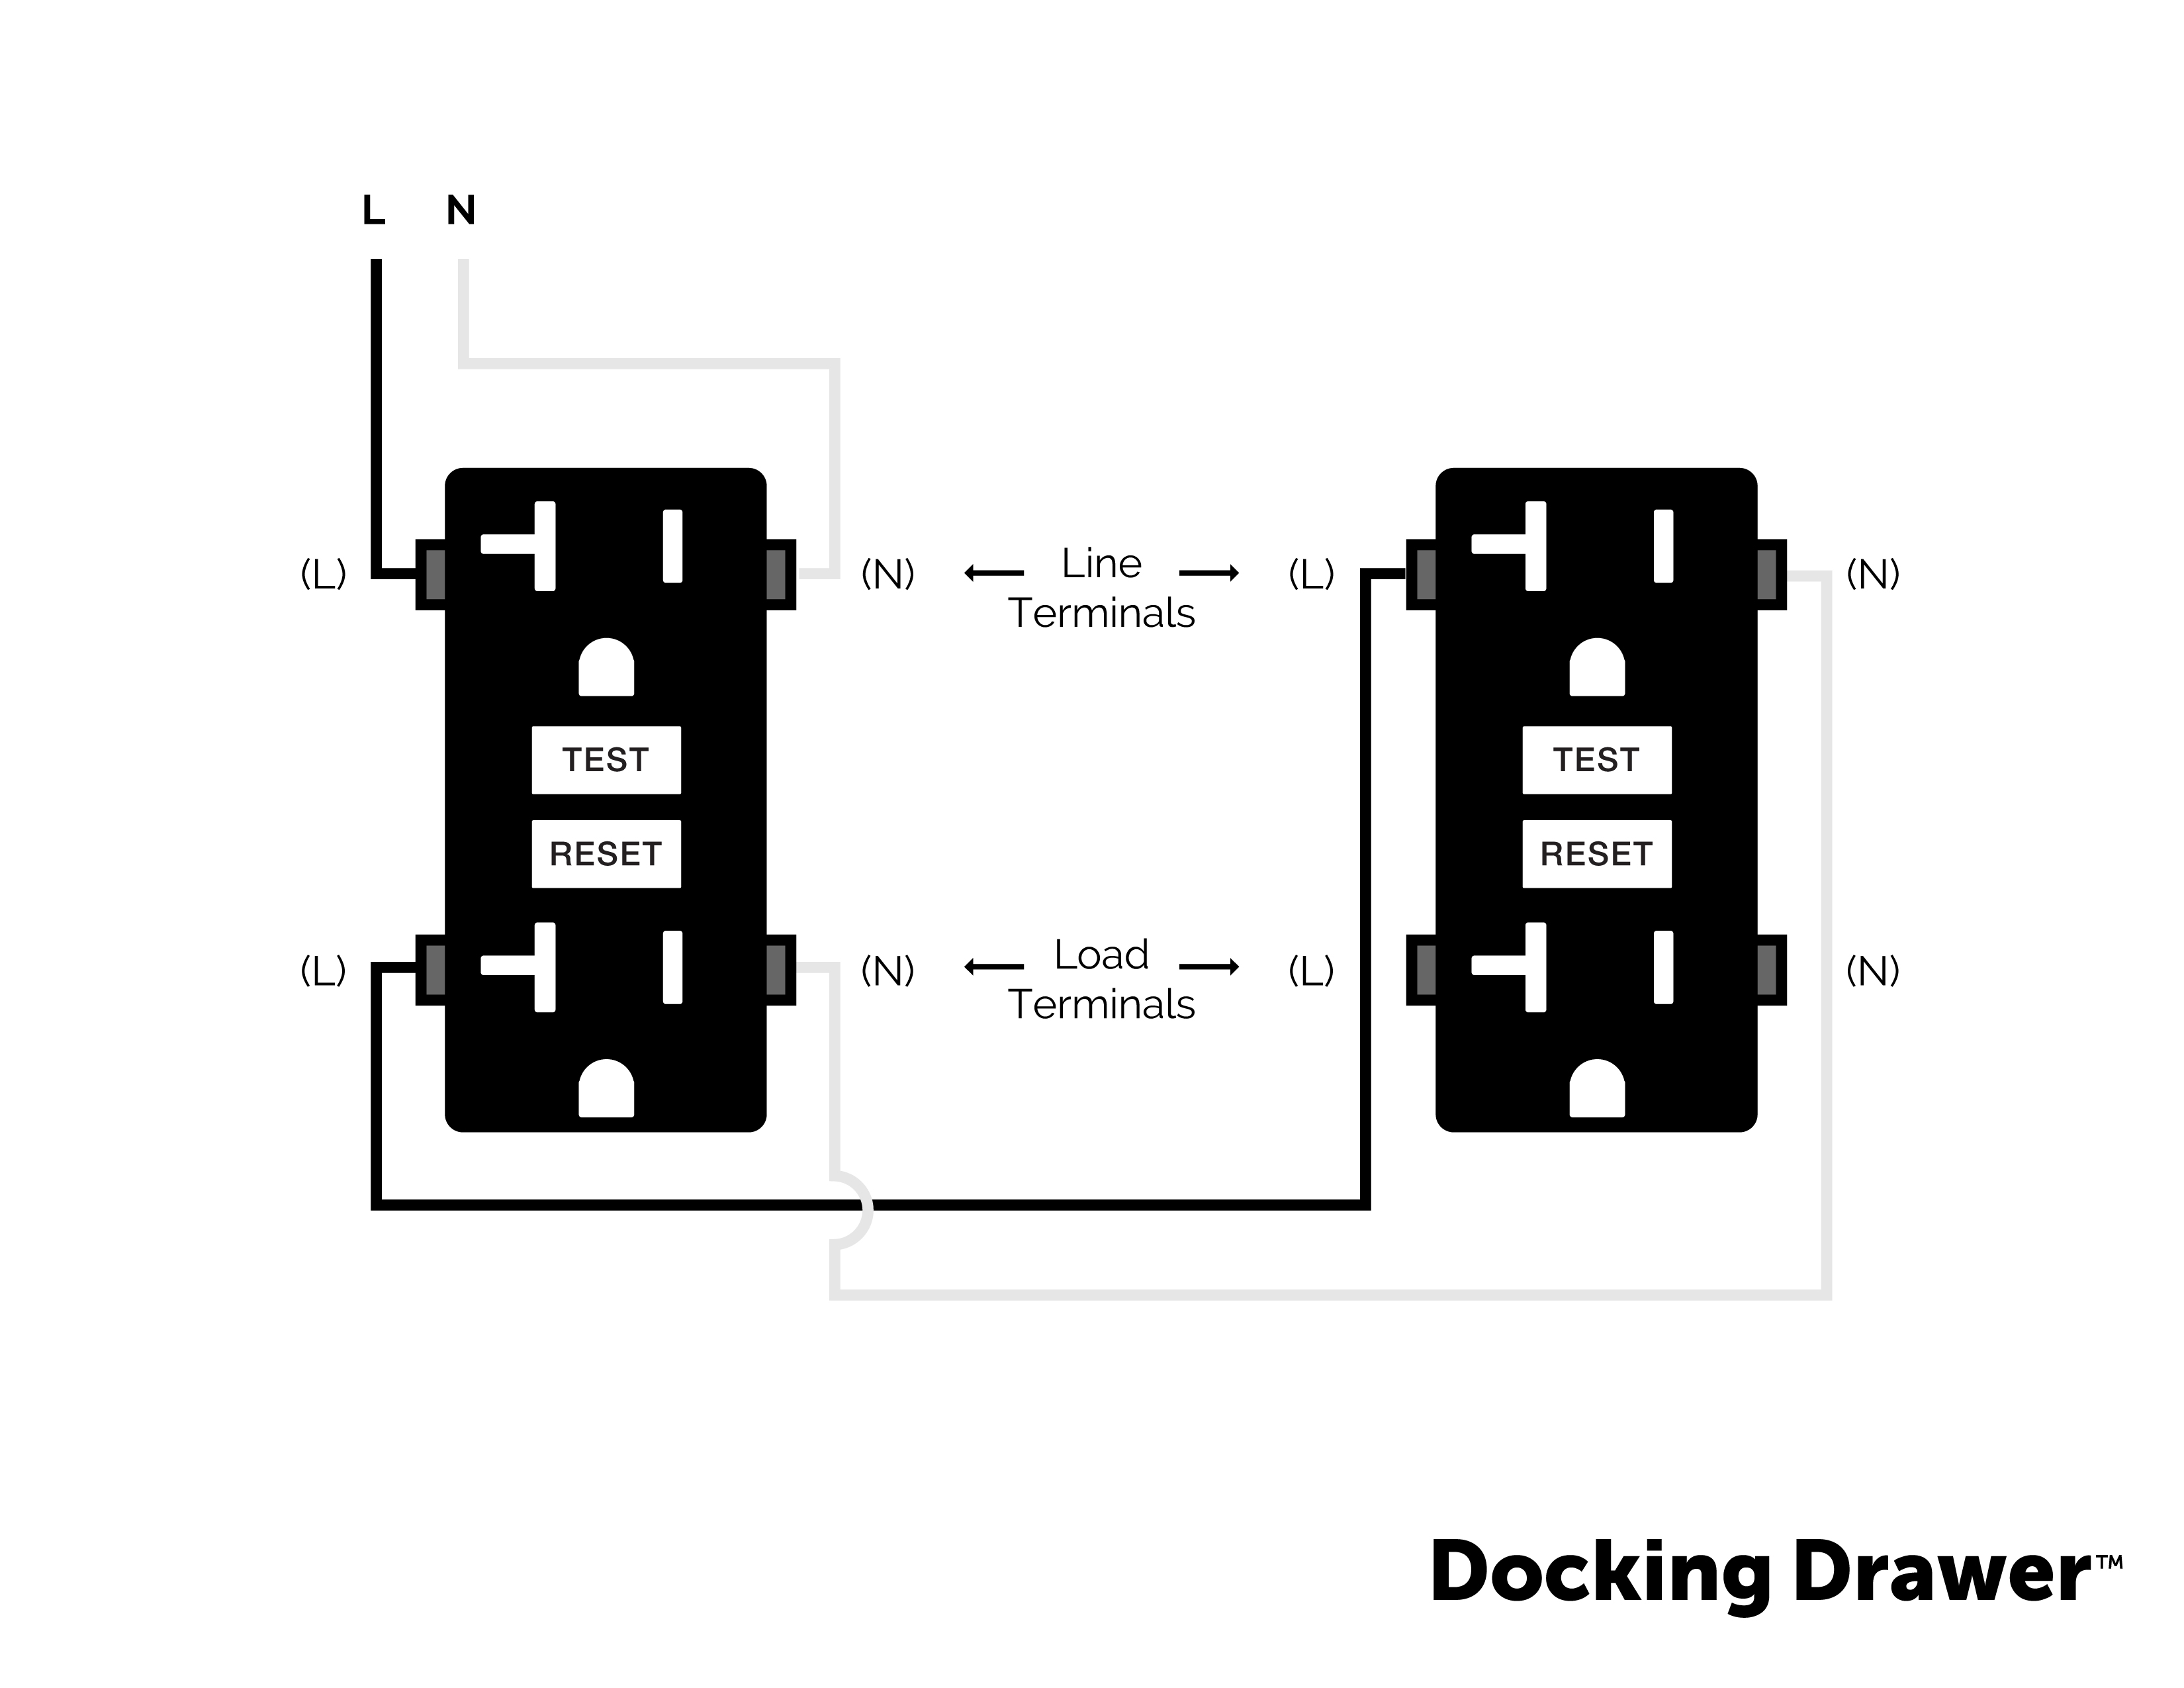 Wiring Diagrams For Gfci Outlets Manual Guide